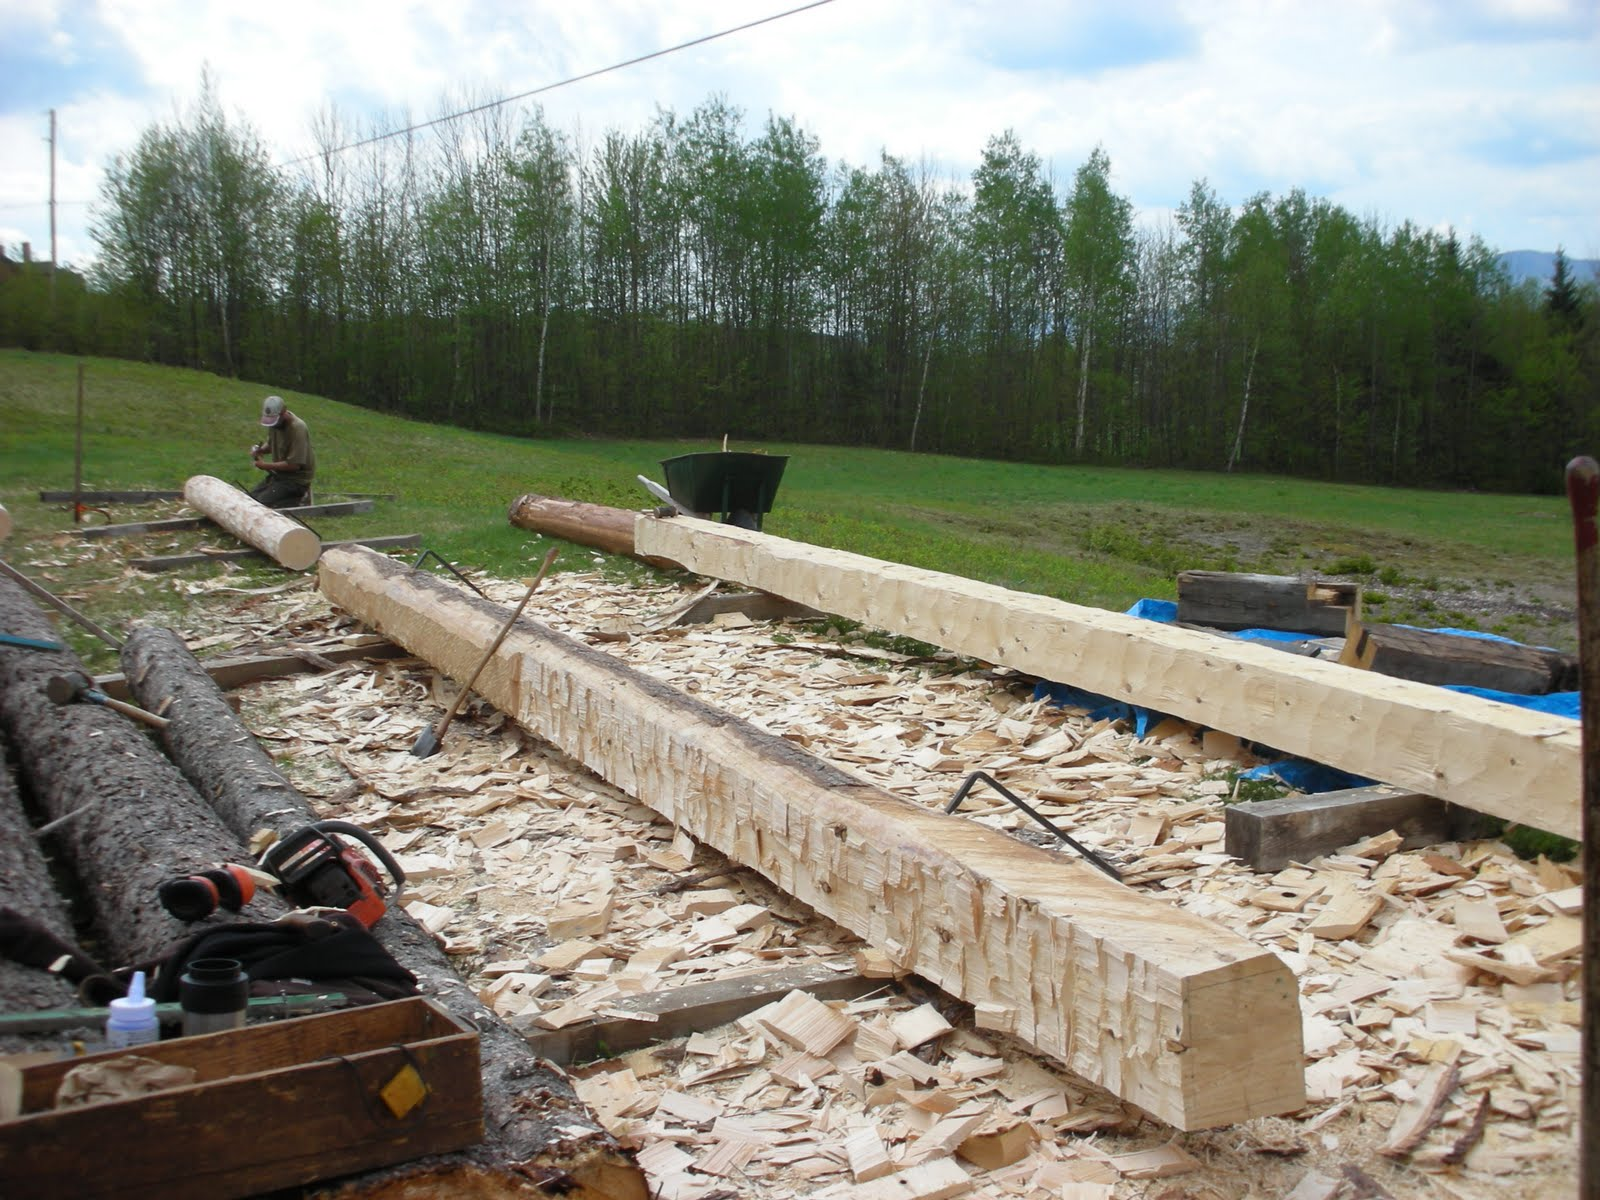 The finished sill timber is in the background with a new sill being roughed out in the foreground.  Michael begins laying out a post timber from a log.